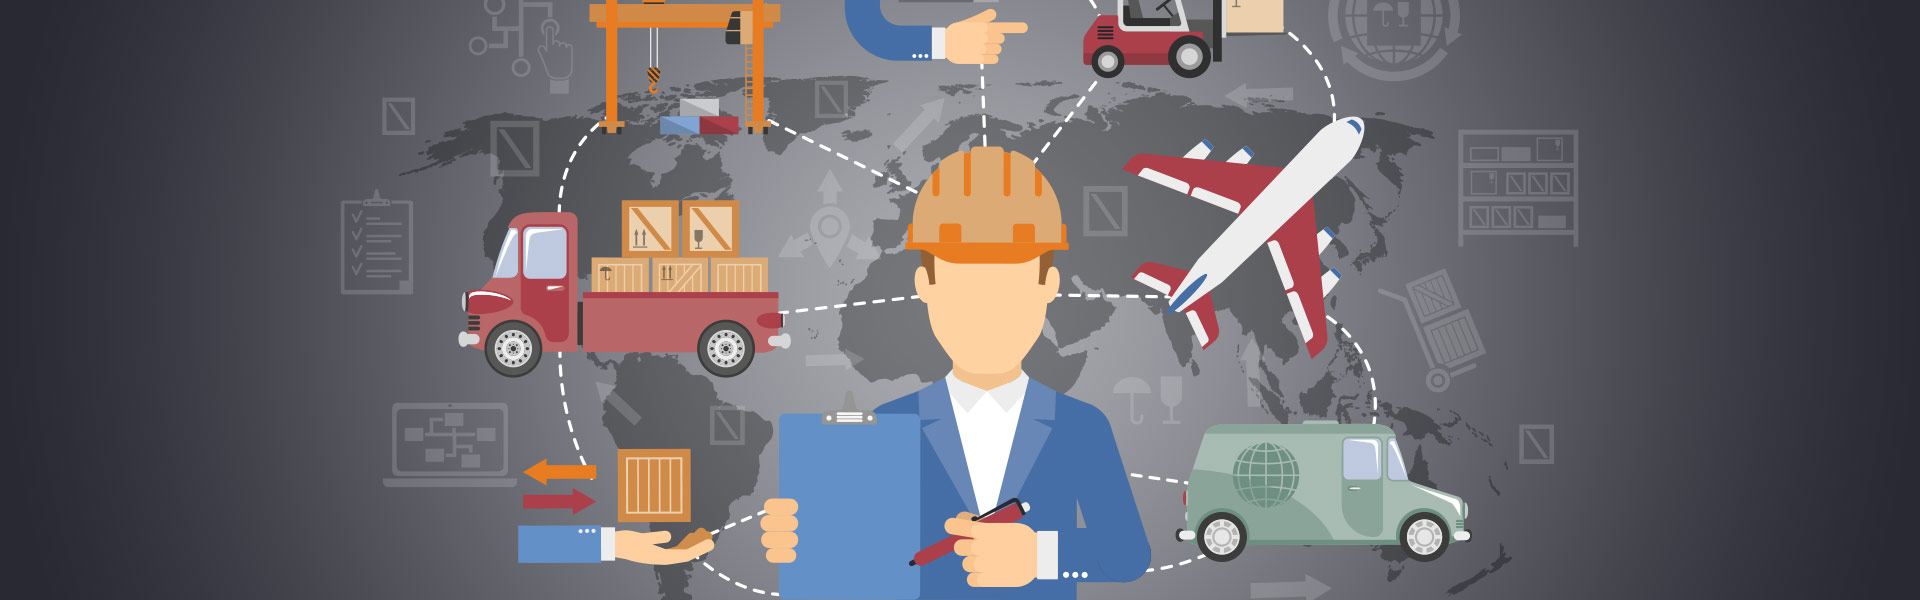 Working in logistics: it's time for an image overhaul